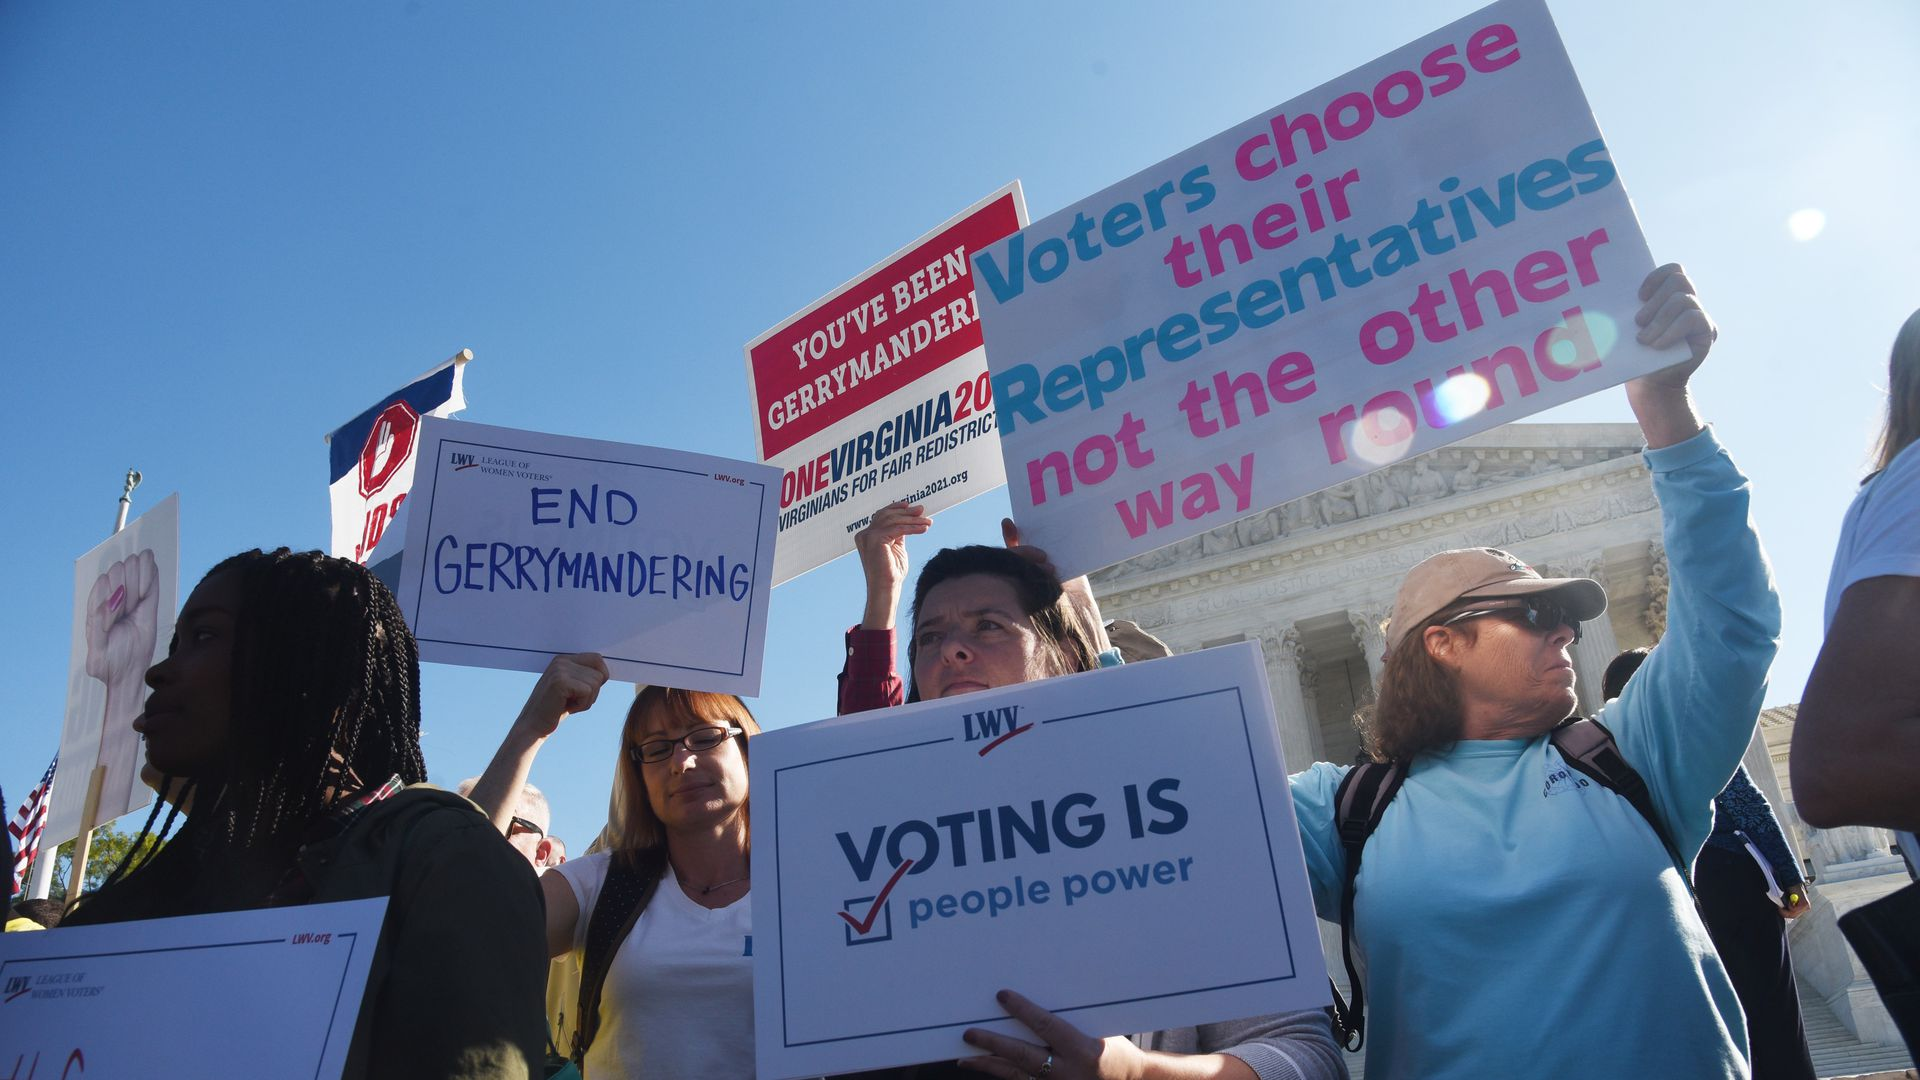 People hold signs about voting rights.